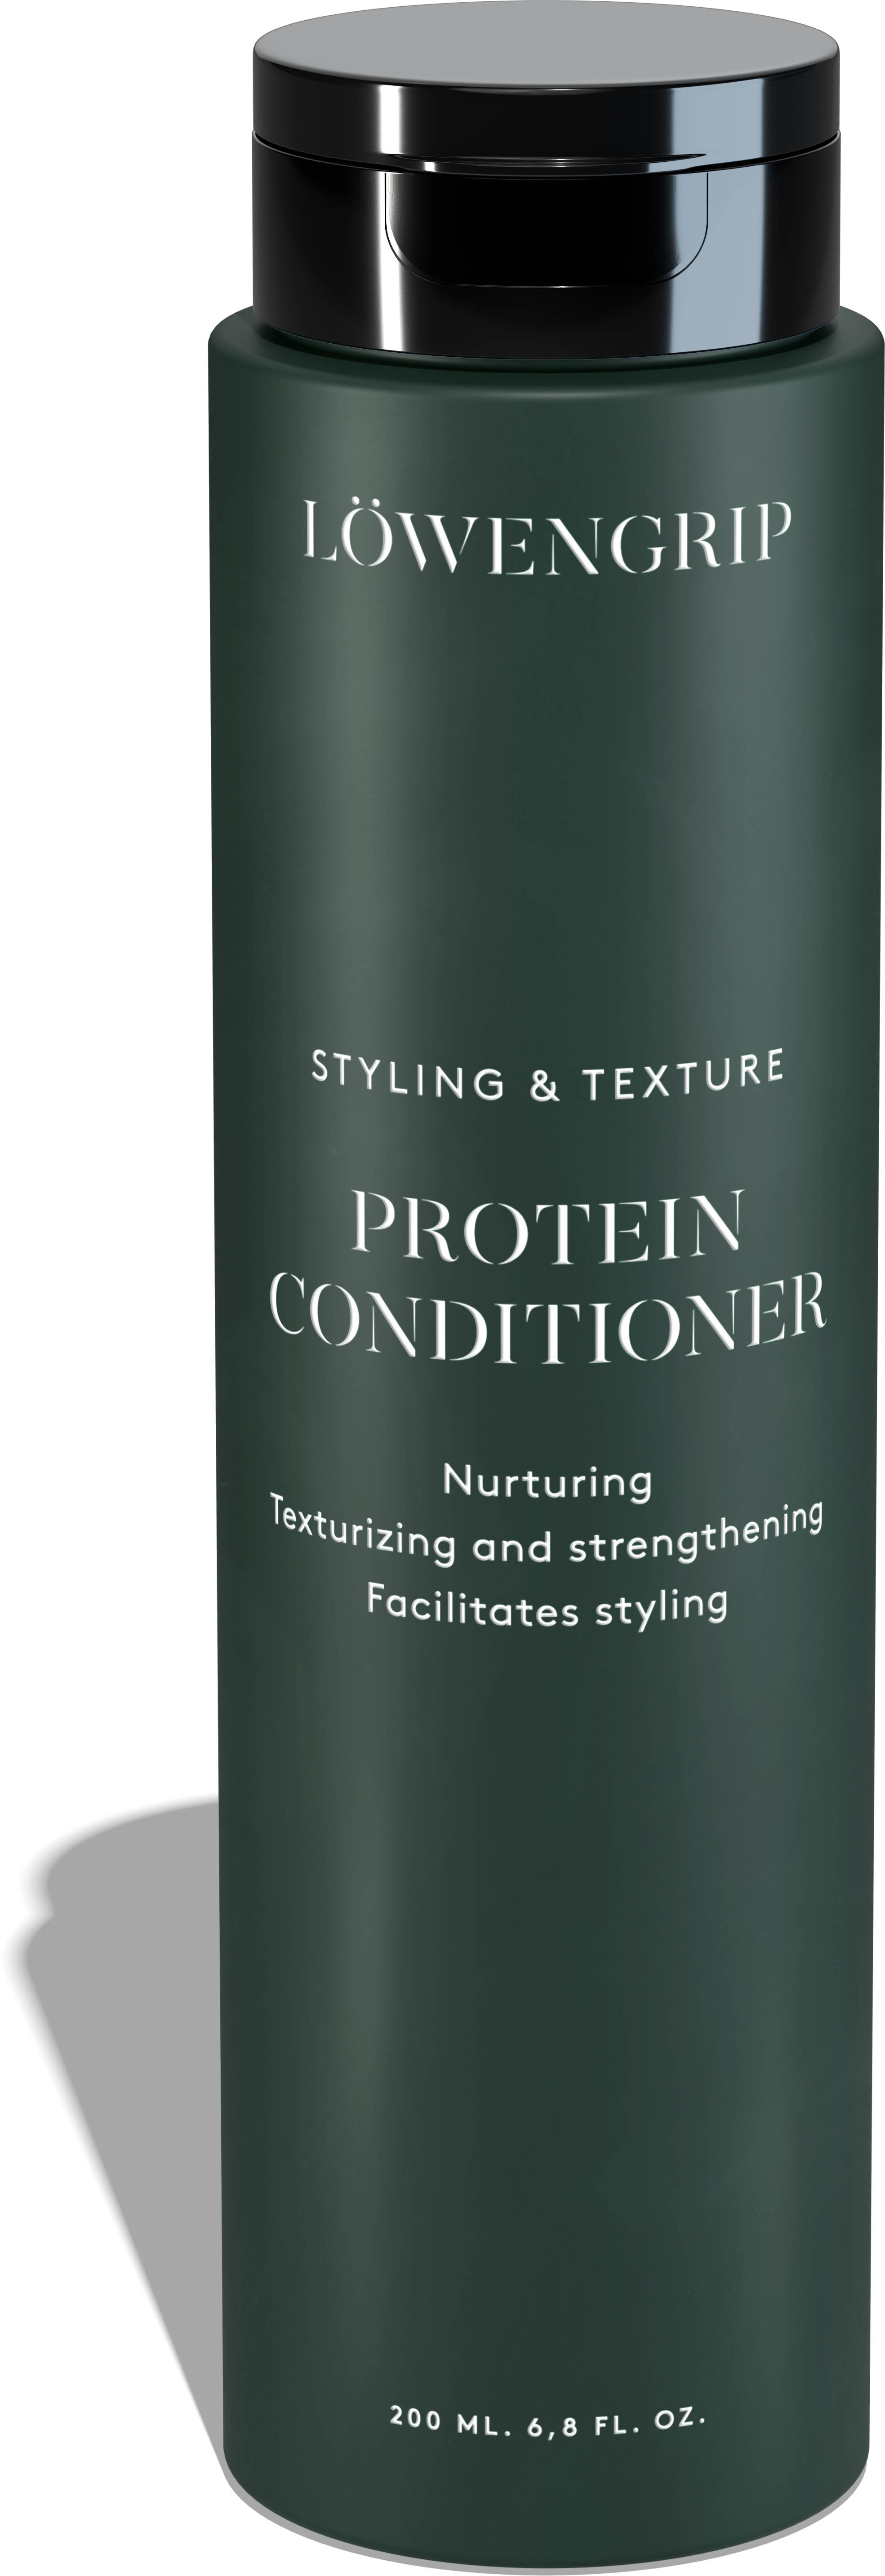 Styling & Texture - Protein Conditioner 200ml